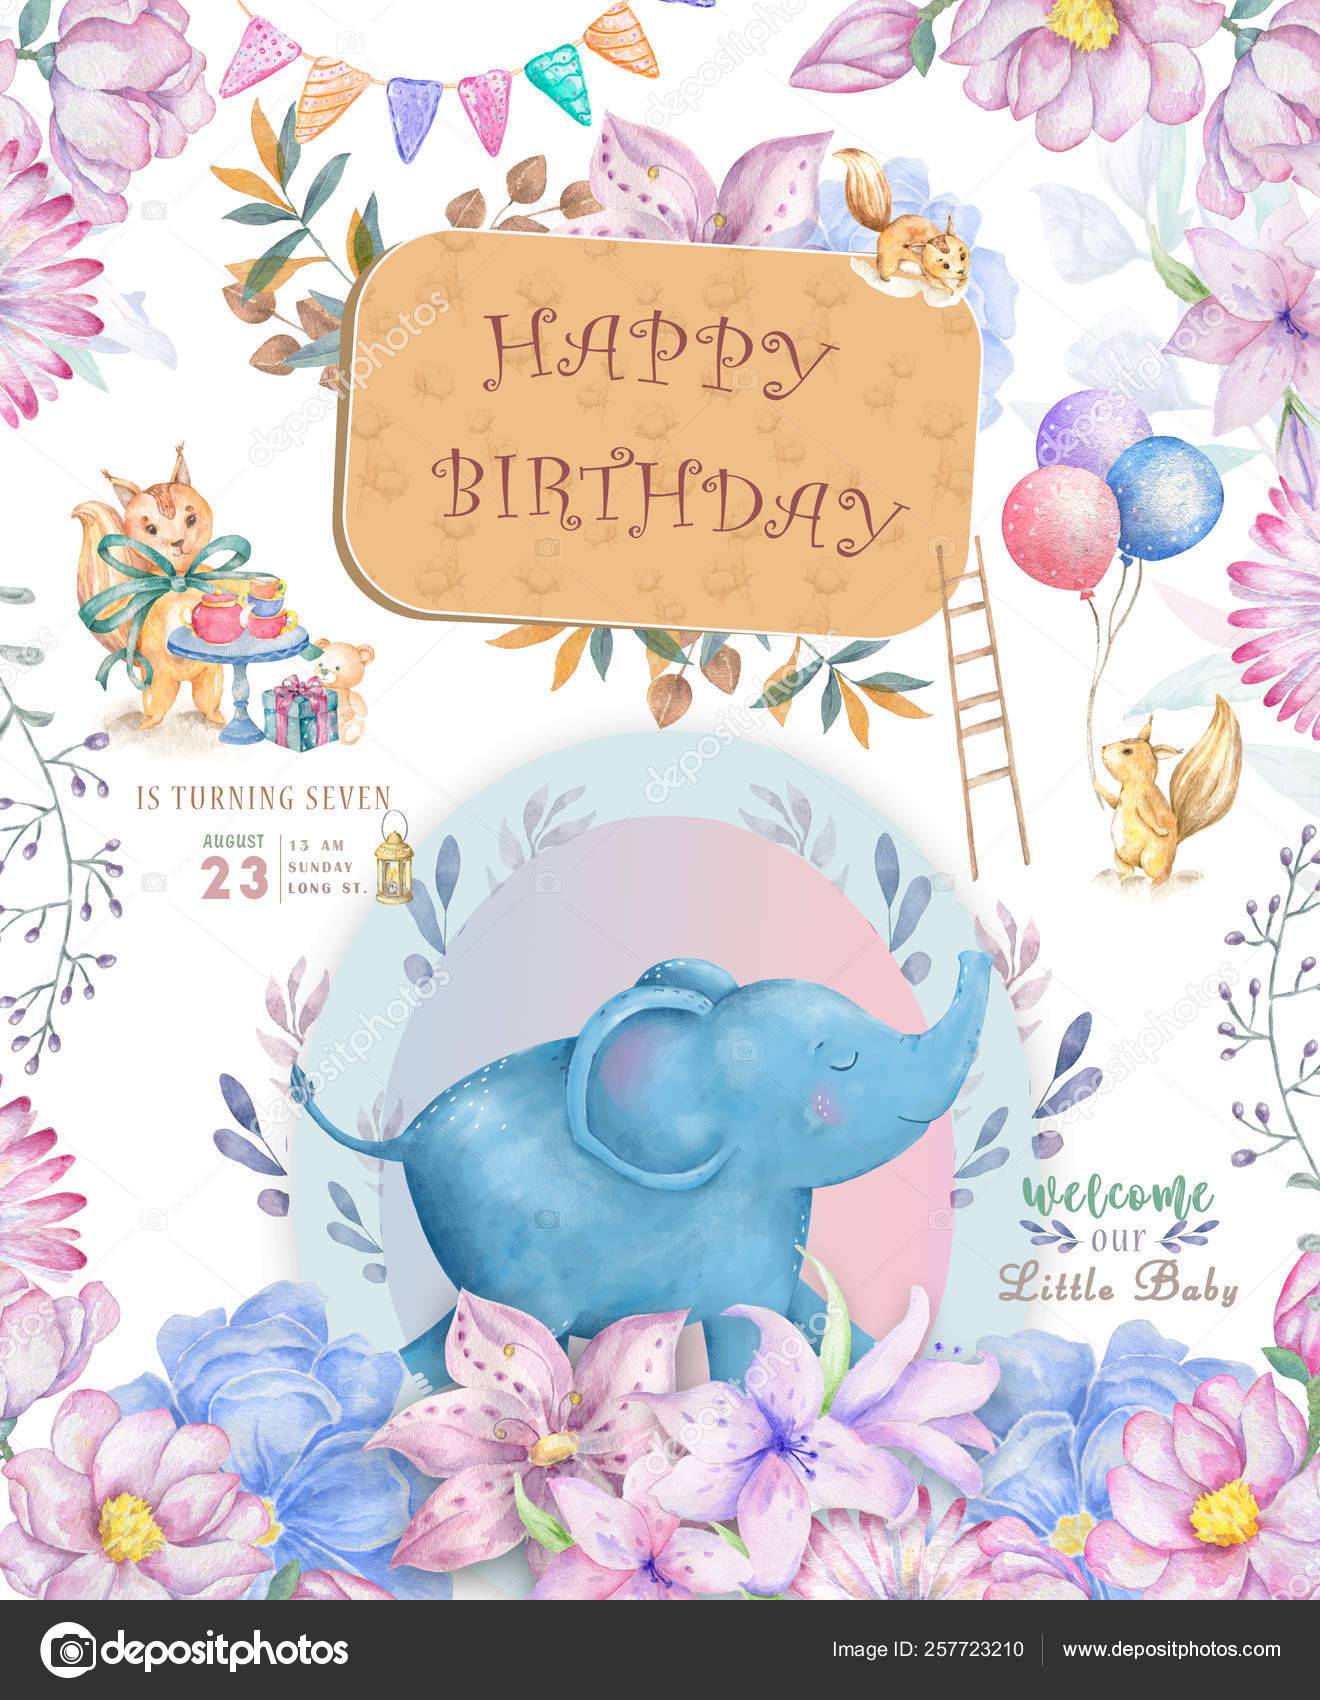 Happy Birthday Card With Cute Elephant Watercolor Animal Cute Baby Greeting Card Boho Flowers And Floral Bouquets Happy Birthday Set Watercolor Greeting Baby Clip Art On White Background Stock Photo C